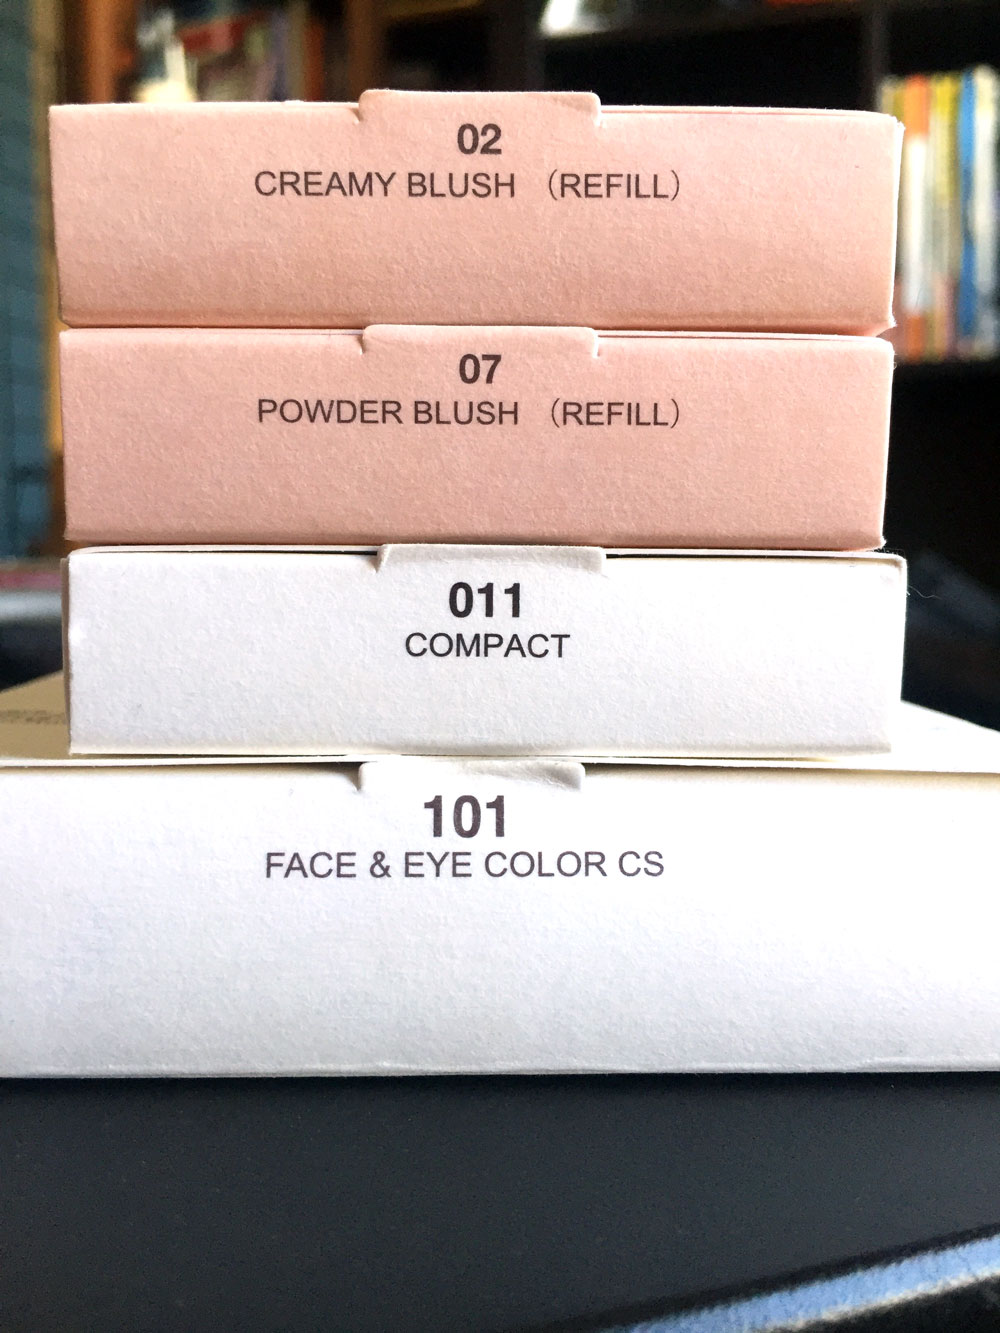 Paul & Joe Spring 2016 Creamy Blush and Powder Blush